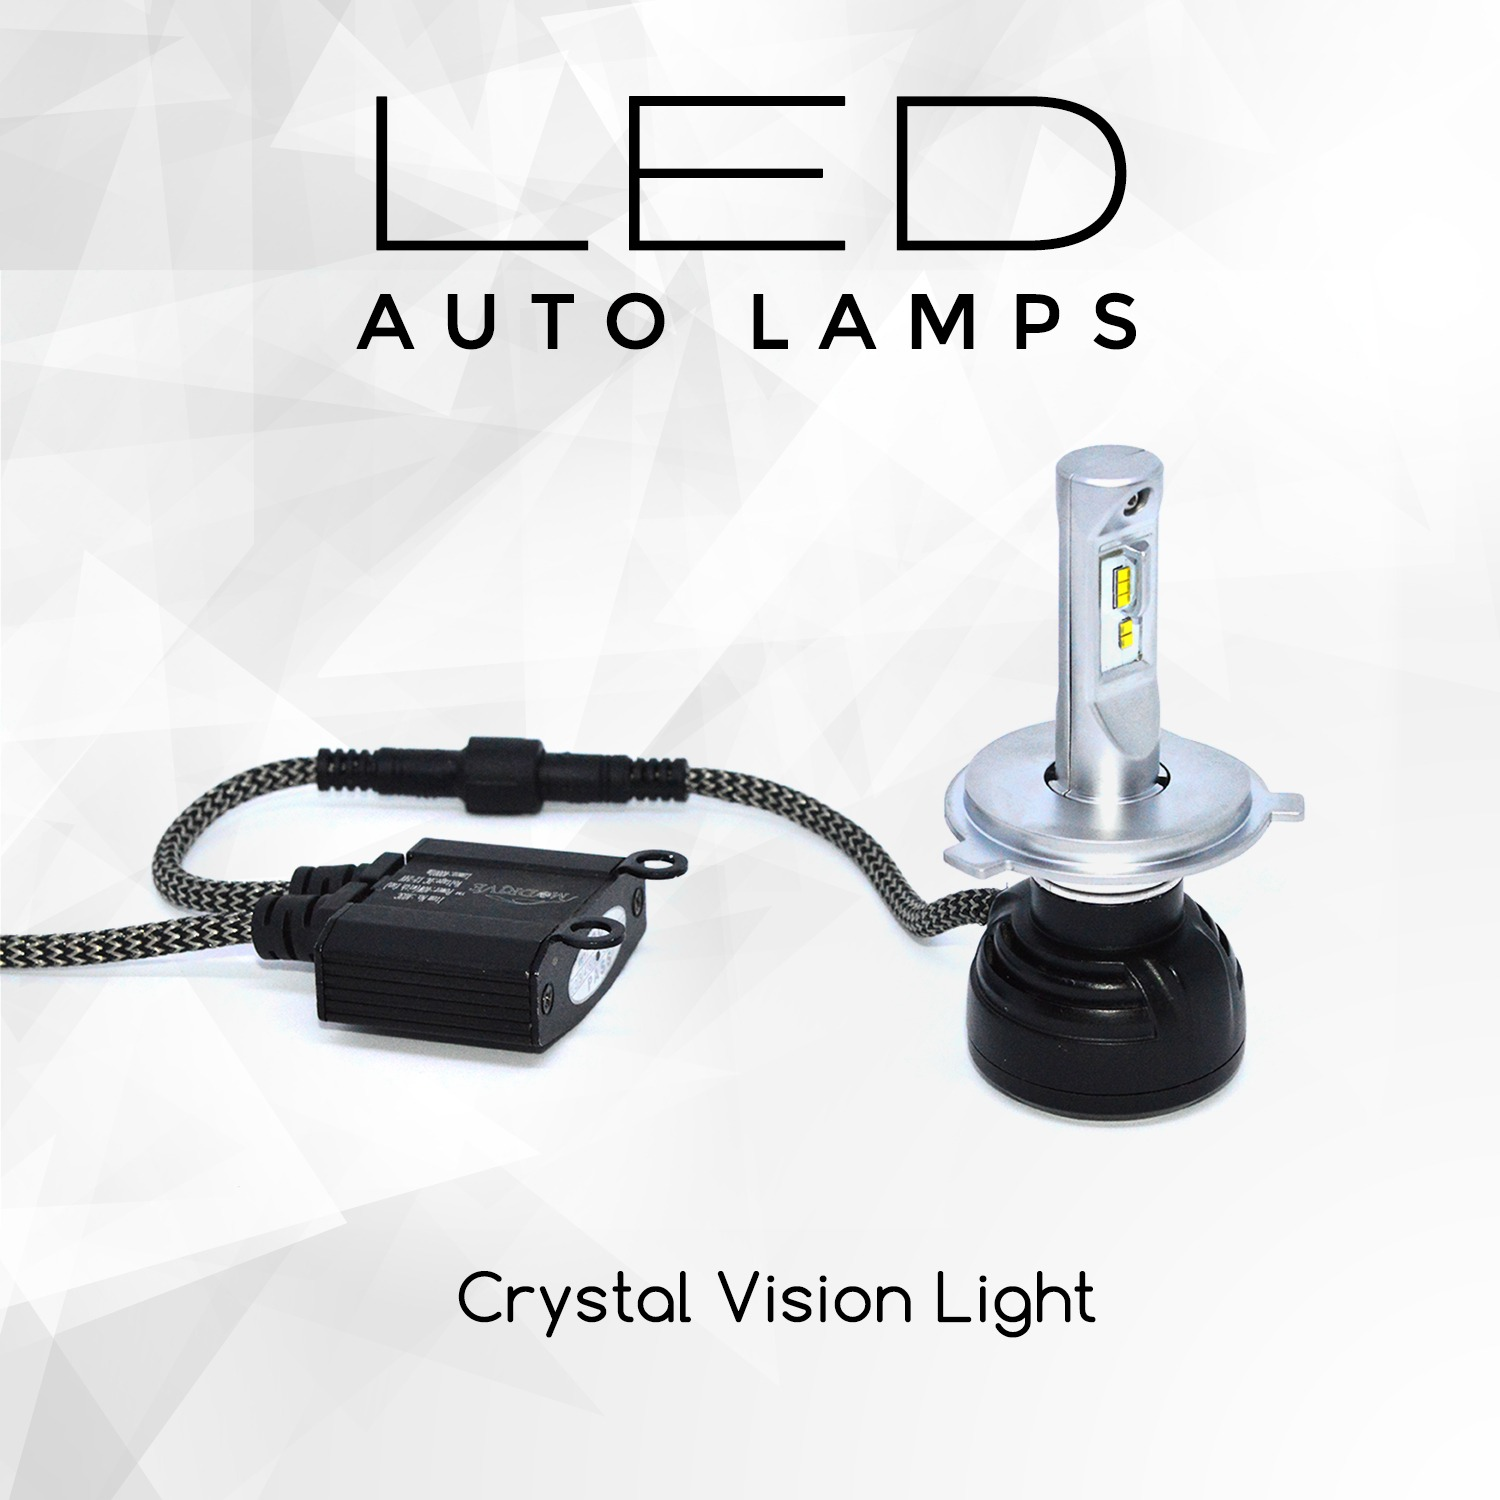 Auto Lamp Modrive Led Auto Lamps Head Lights For Car 40 Watts Modishombre The Luxury You Desire